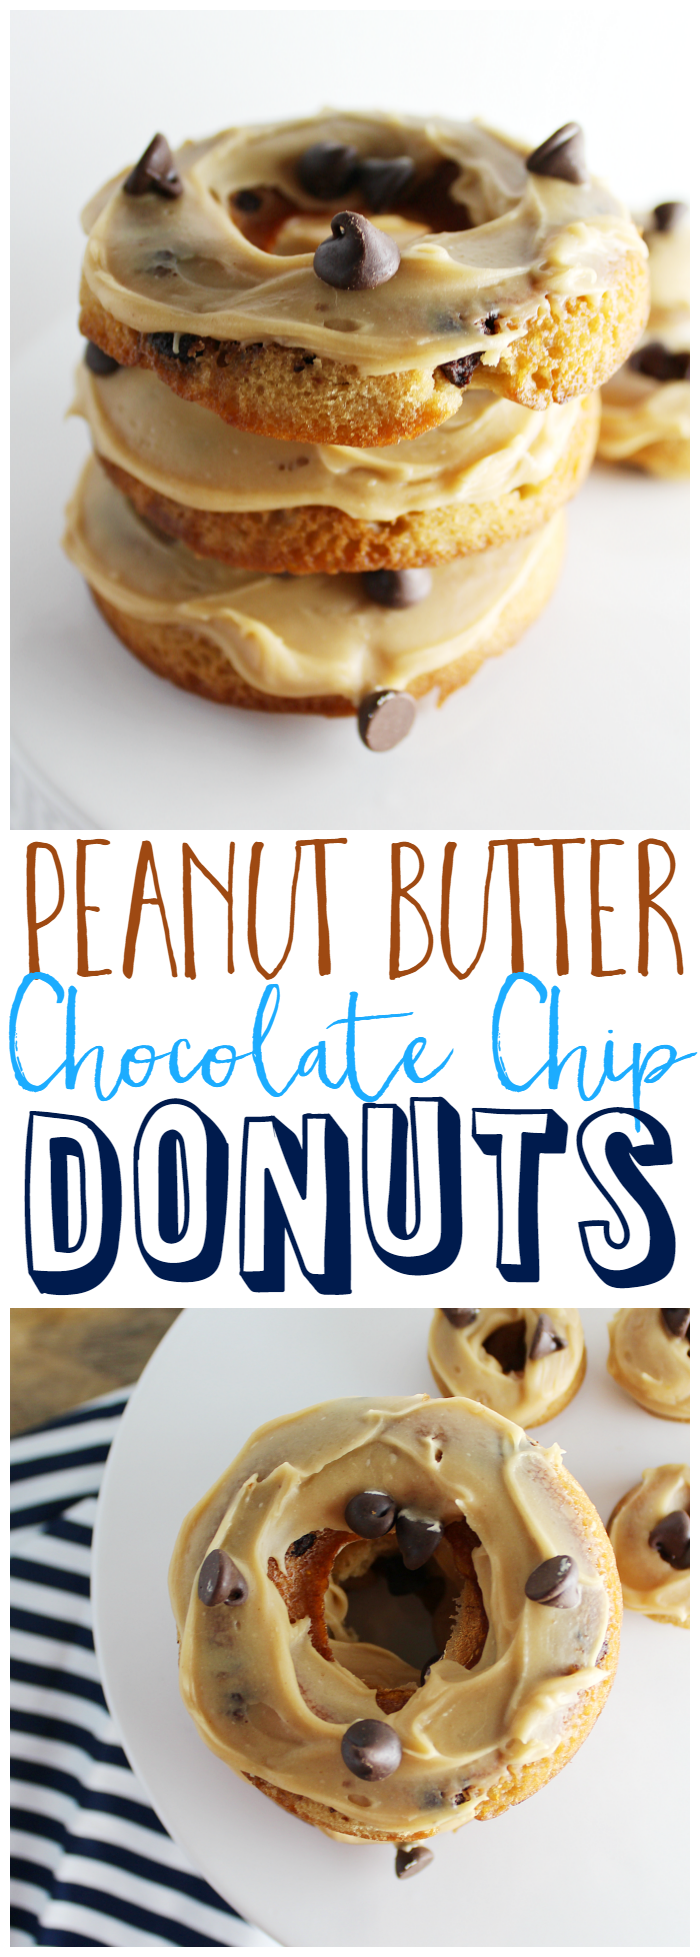 Peanut Butter Chocolate Chip Donuts - I whipped up some yummy Peanut Butter Chocolate Chip Donuts. They are so easy to make and perfect for a sweet breakfast or dessert!